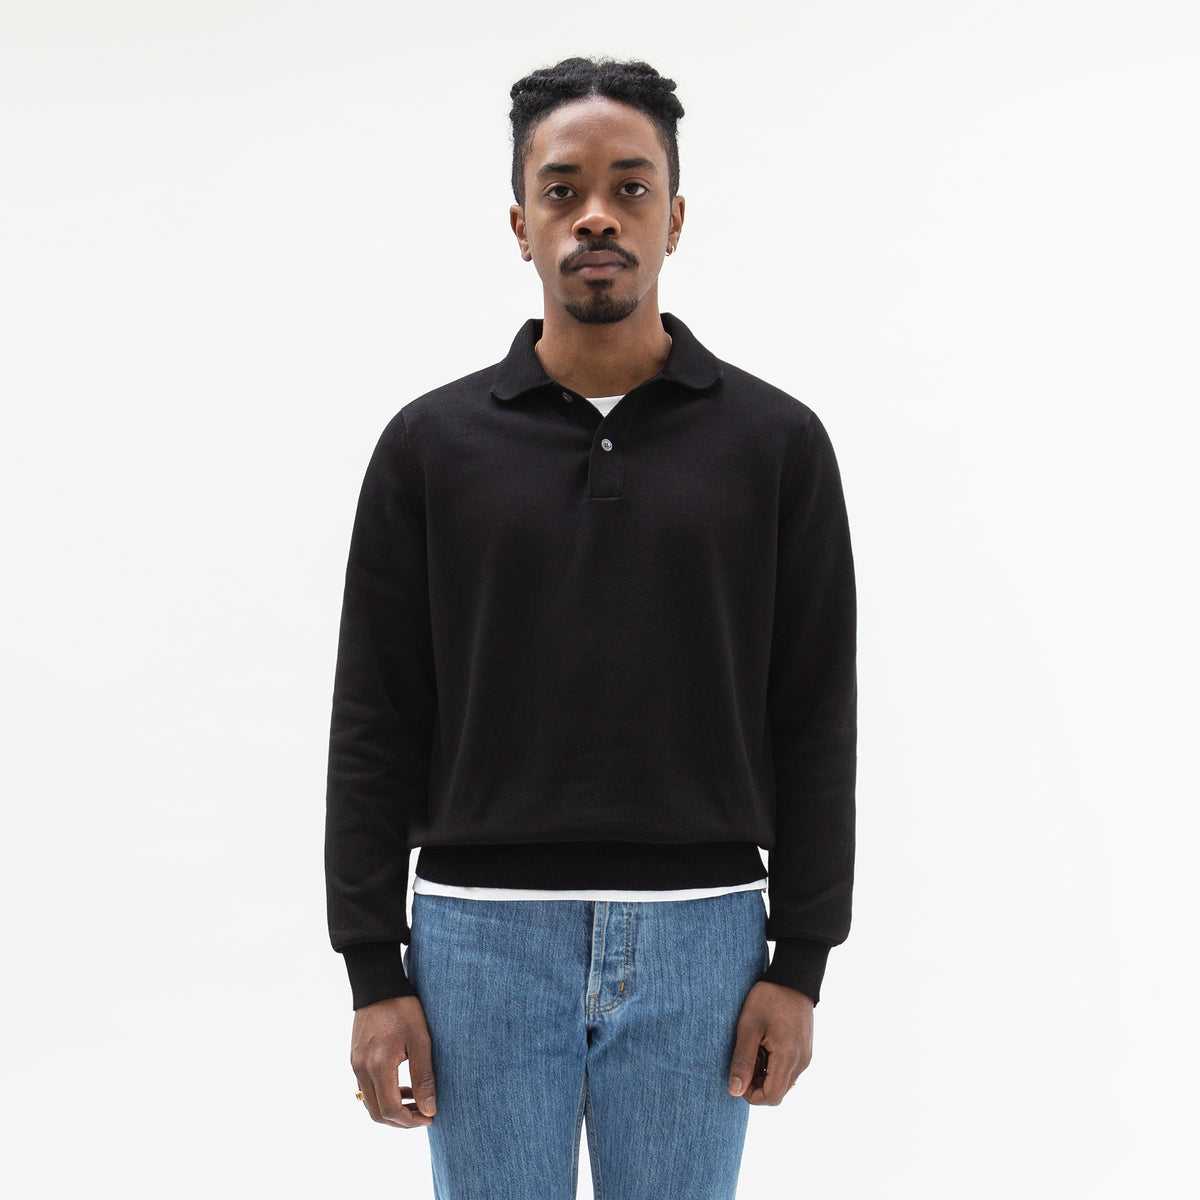 Knitted Polo Shirt Black - Unrecorded